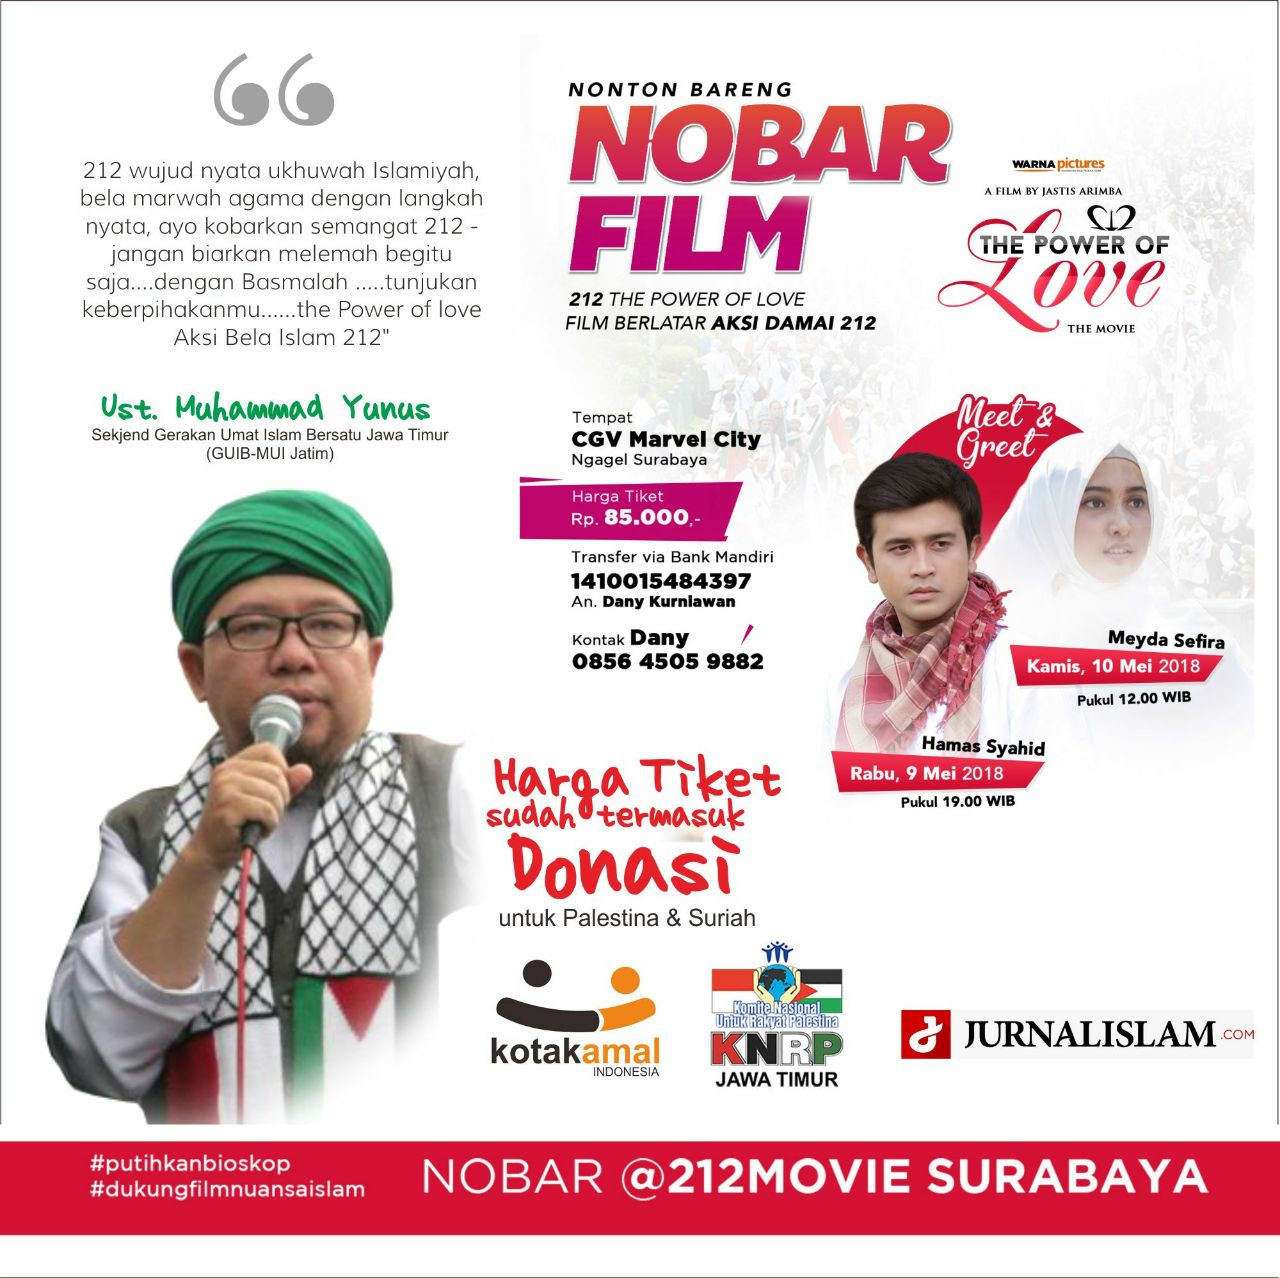 Meet & Greet Artis dan Nobar Film 212 The Power of Love di Surabaya